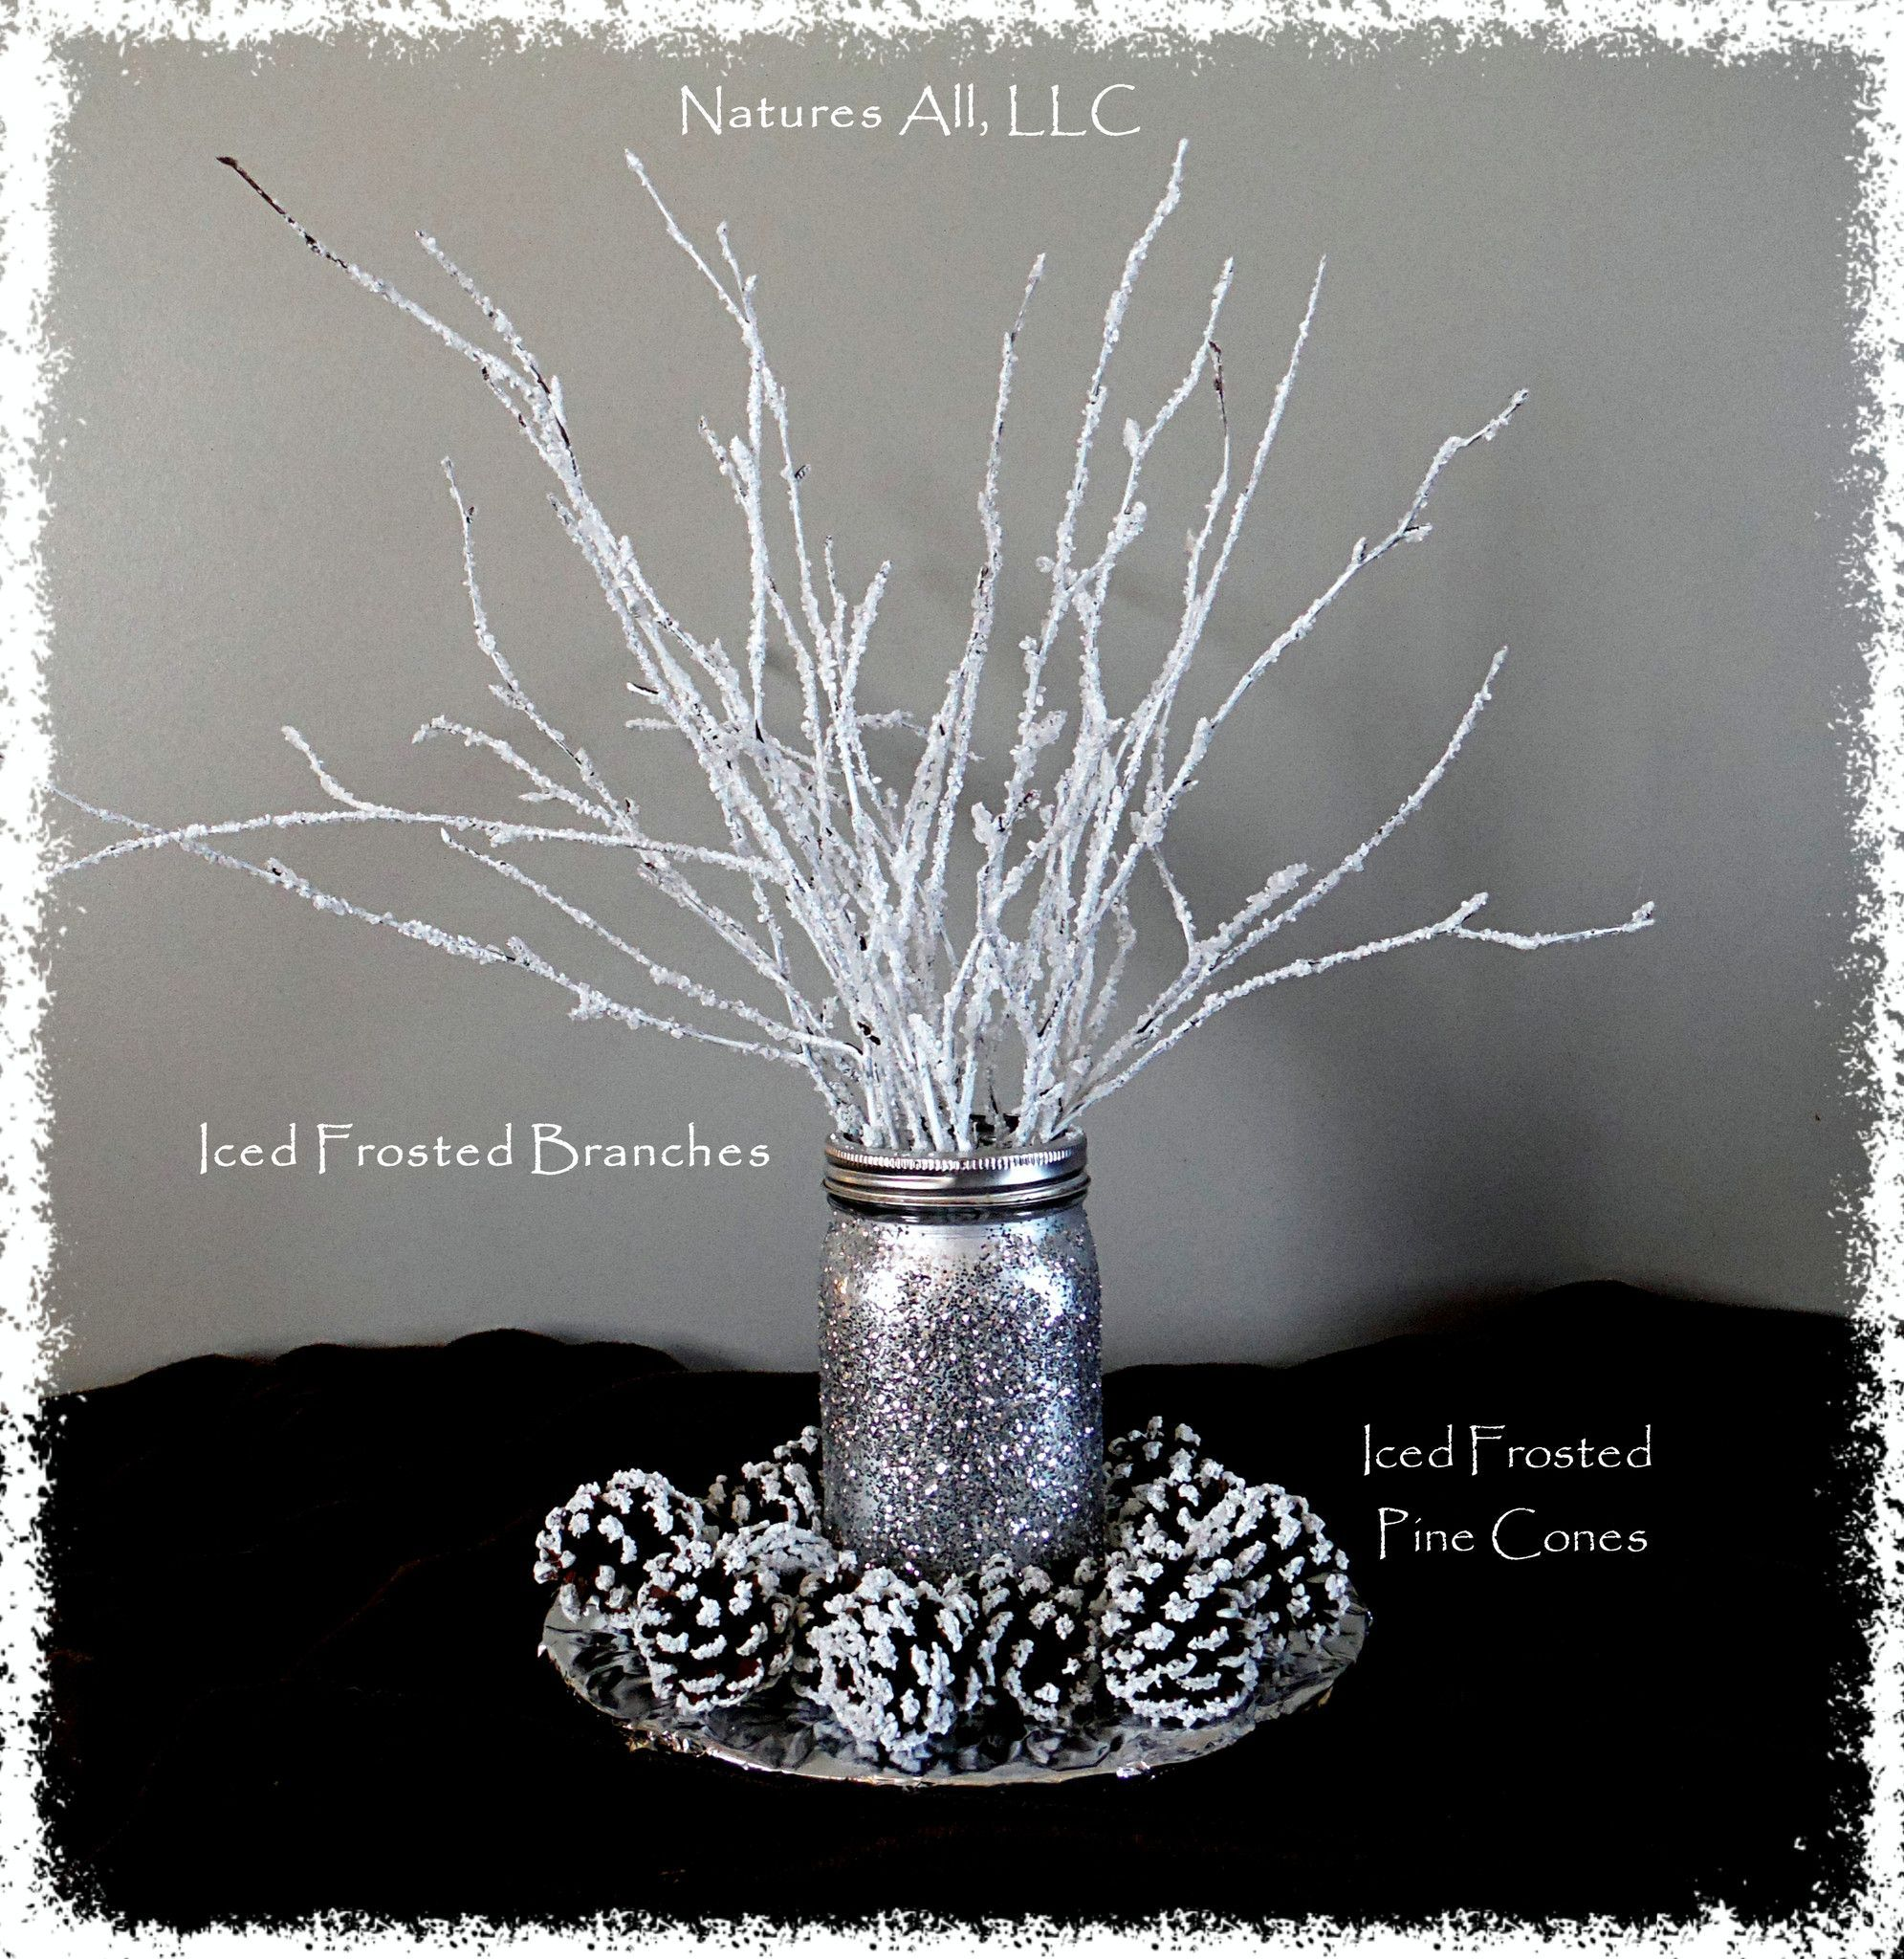 Decorative White Birch Branches Iced Frosted Branches Winter Wedding And Ho Winter Wonderland Decorations Winter Wonderland Theme Winter Wonderland Baby Shower